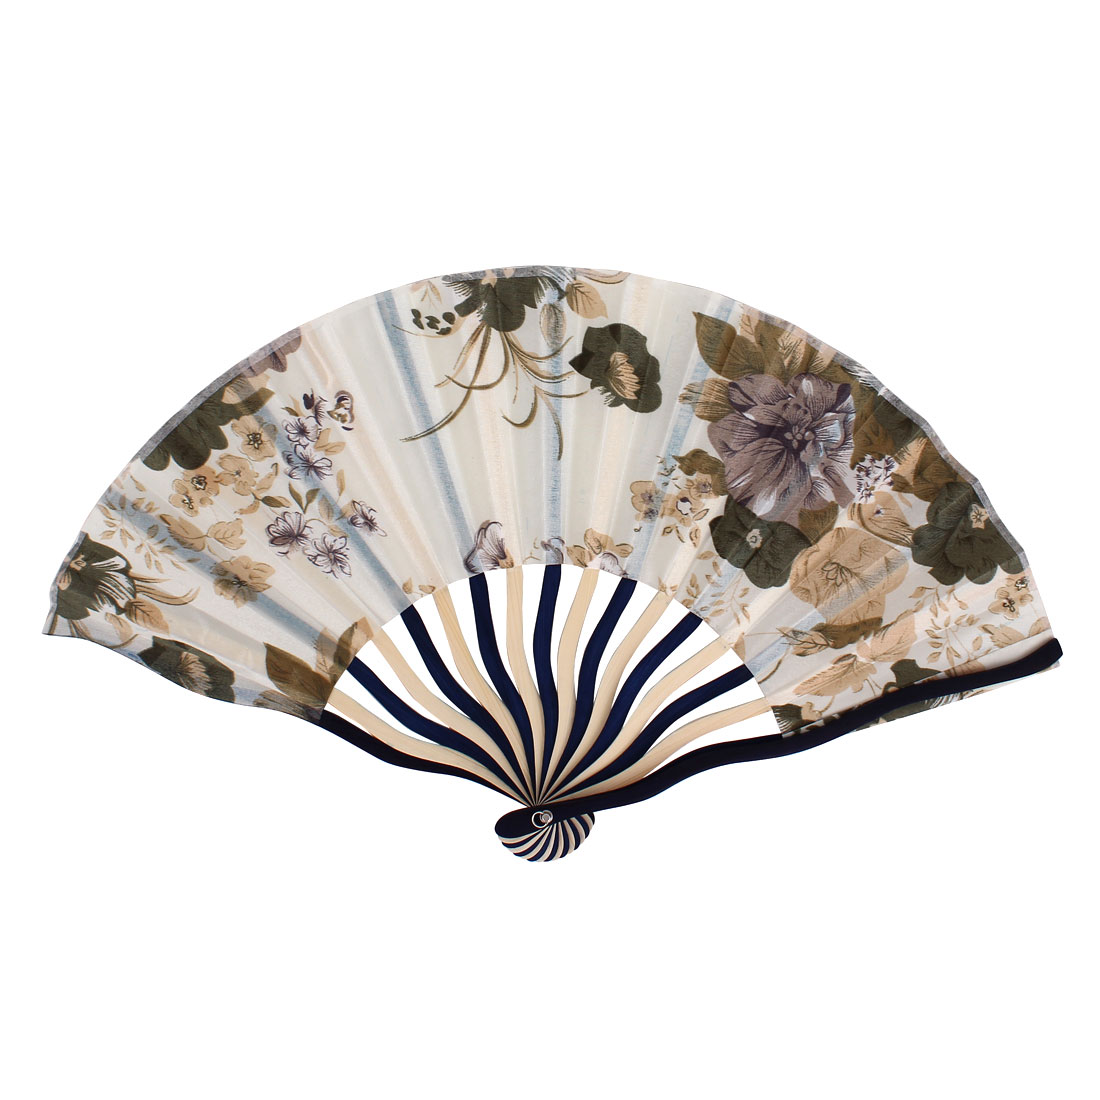 Chinese Blooming Peony Flower Print Ivory Blue Bamboo Frame Beige Fabric Cloth Handheld Folding Hand Fan